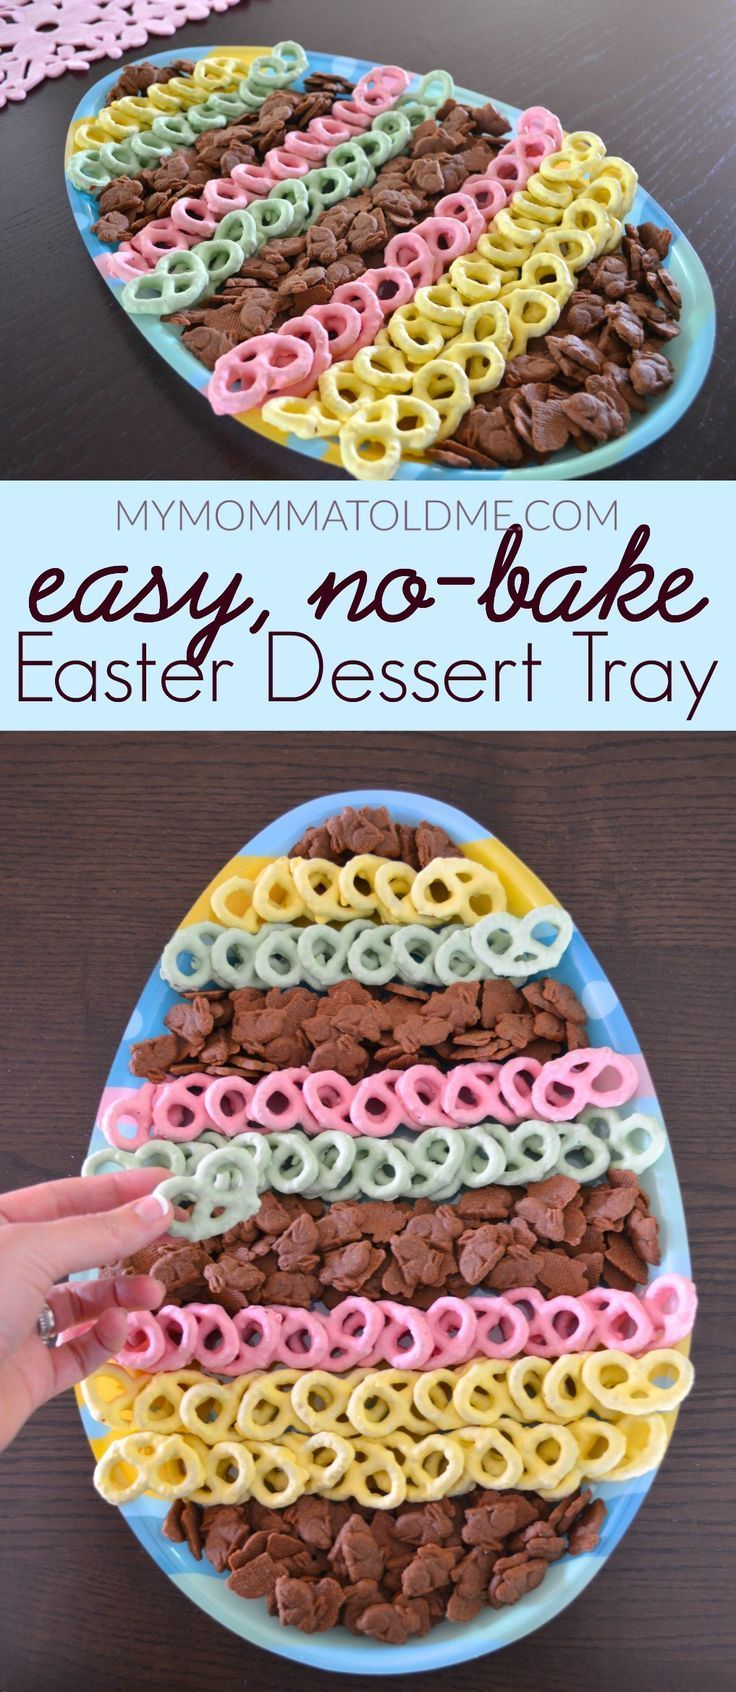 Easter dessert idea: easy no-bake Easter dessert tray!  All you need are yogurt covered pretzels (or chocolate-covered) and some bunny graham cookies!